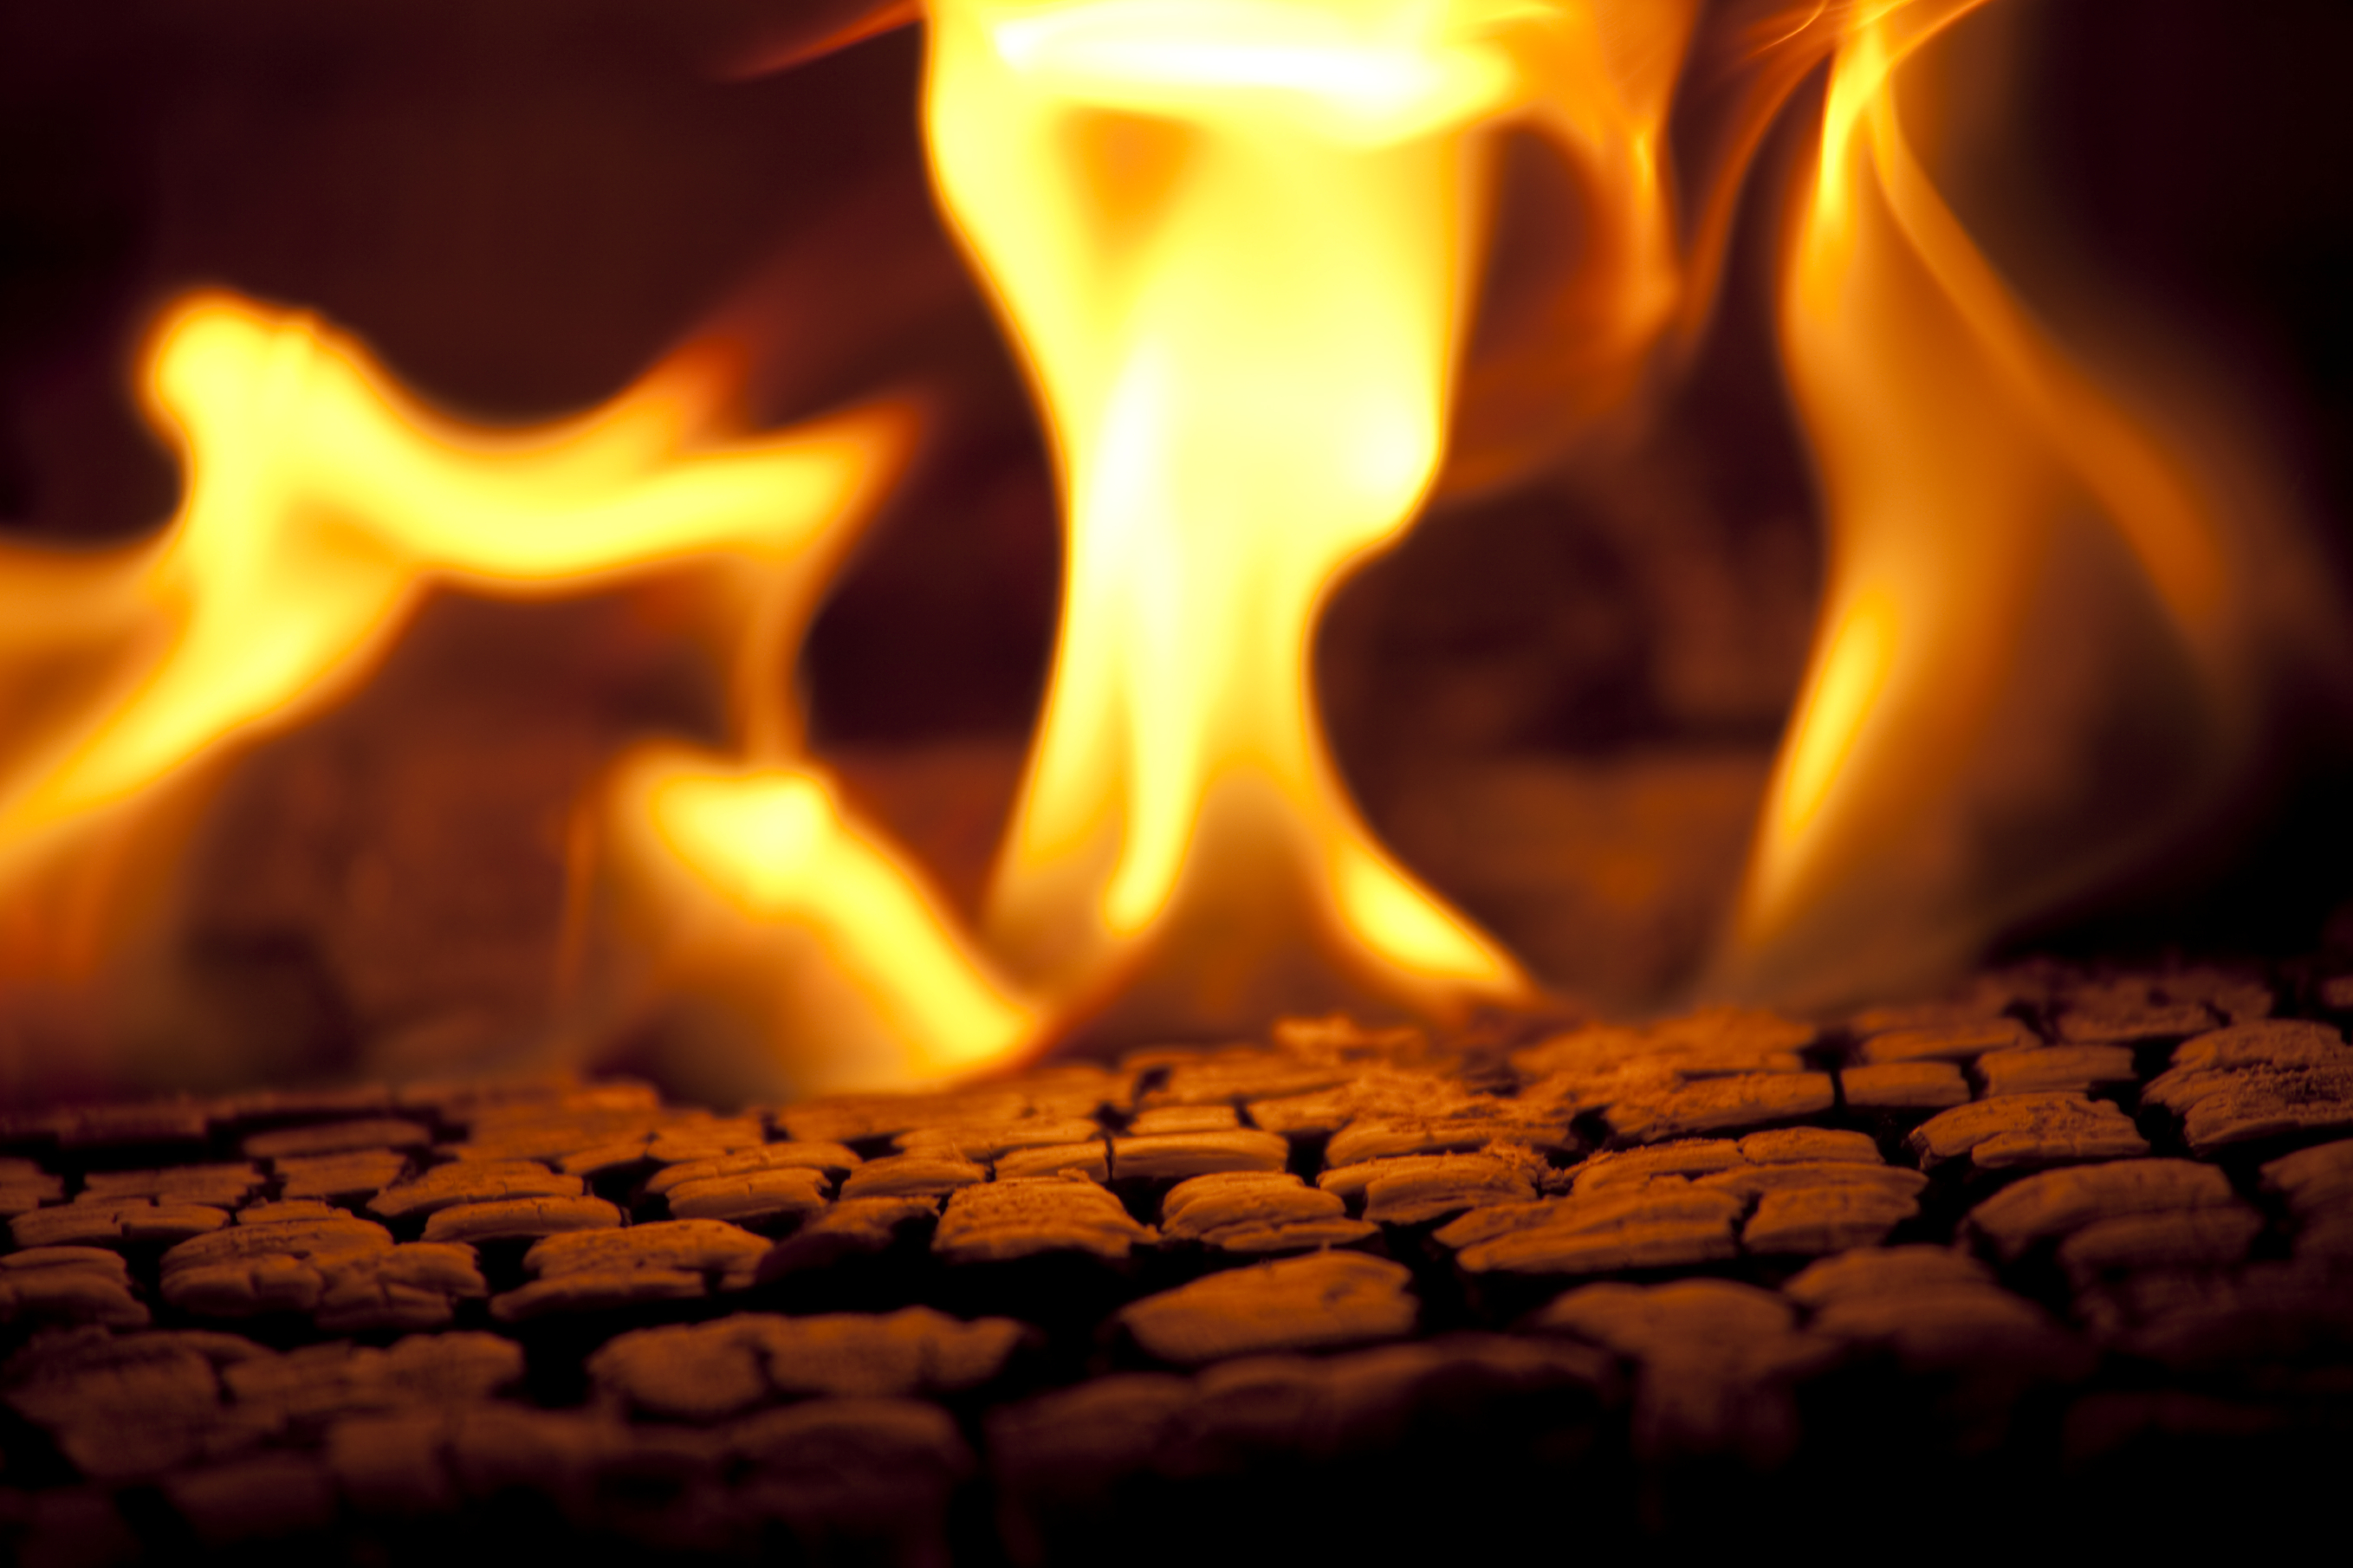 Closeup of a lit fireplace